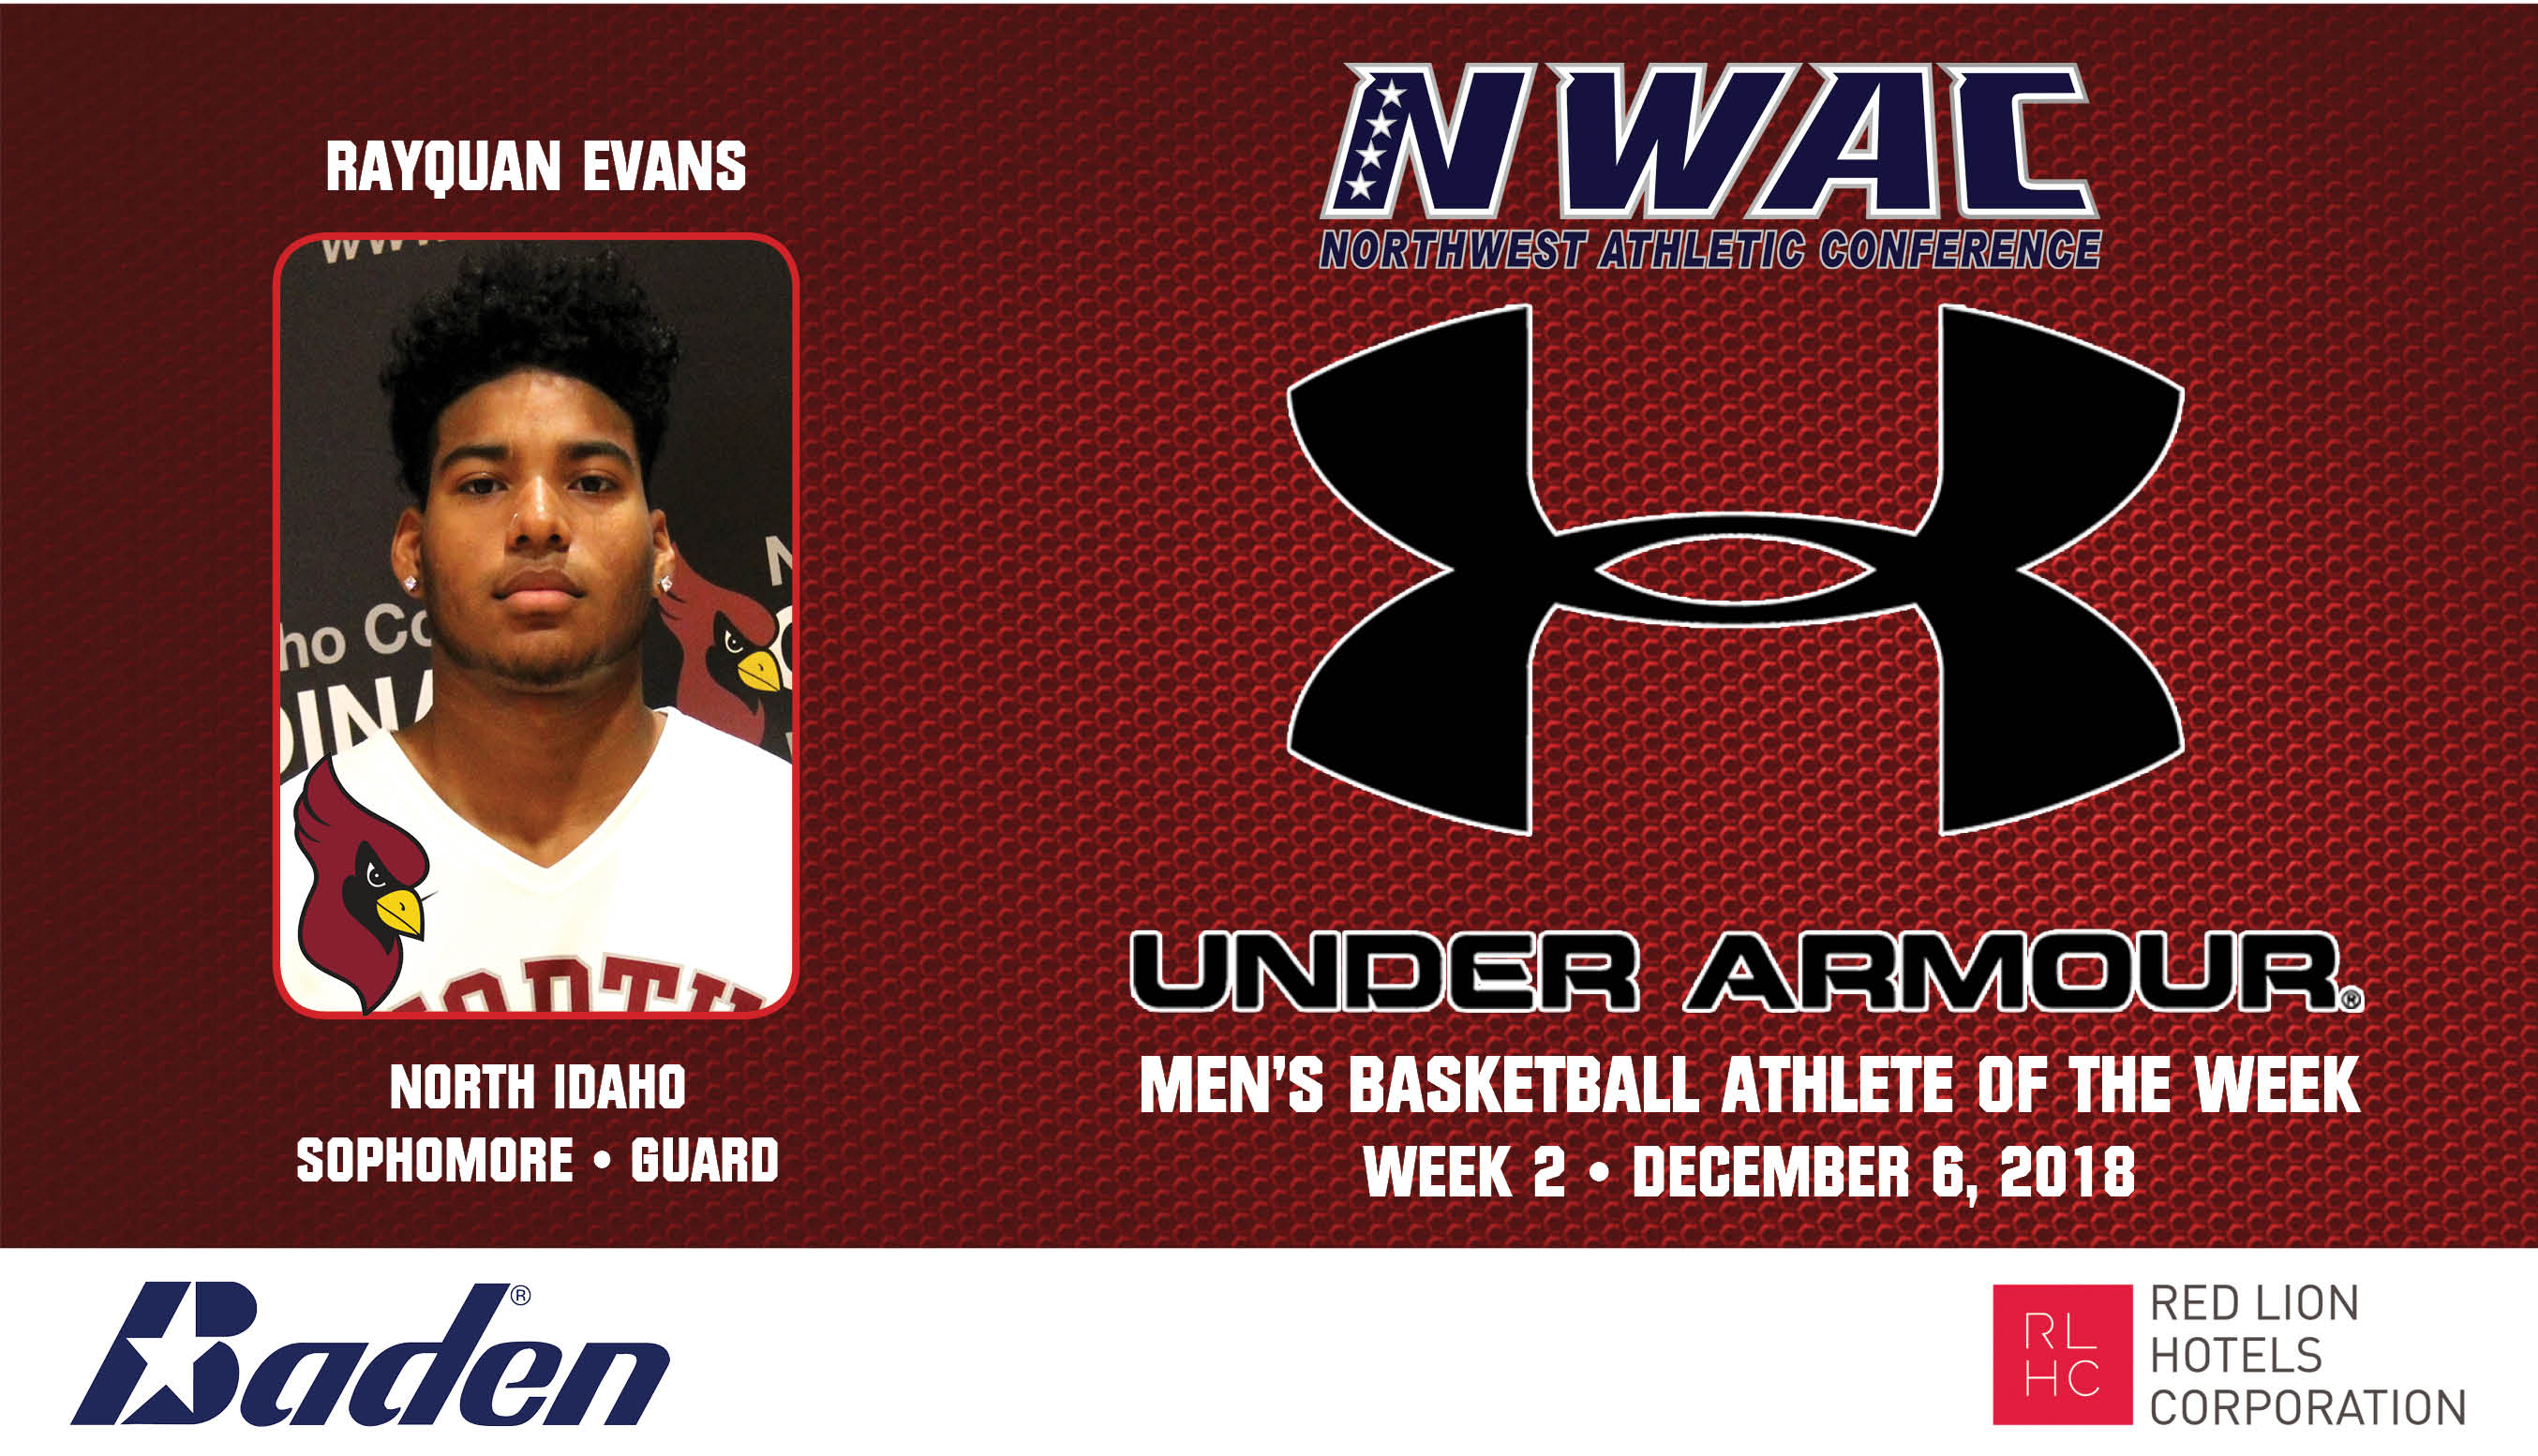 RayQuan Evans Under Armour photo